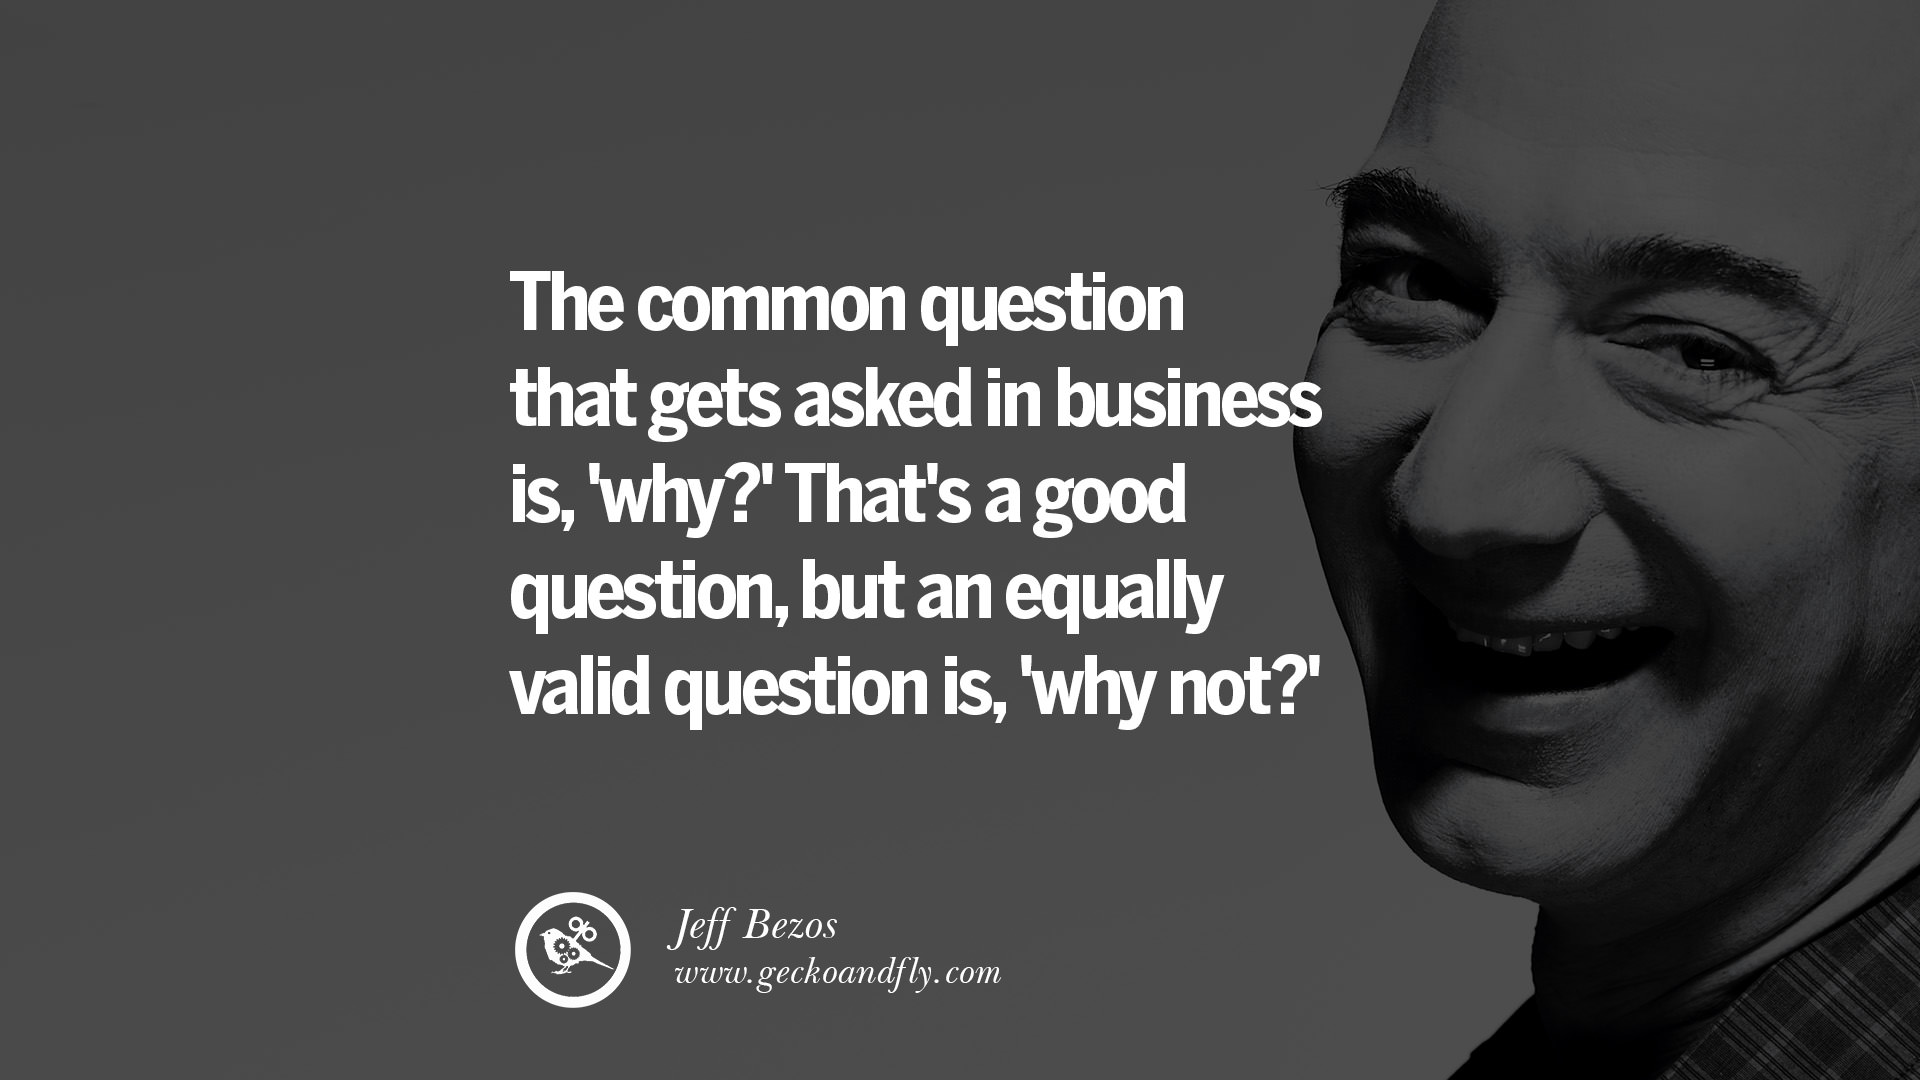 Quotes On Innovation 20 Famous Jeff Bezos Quotes On Innovation Business Commerce And